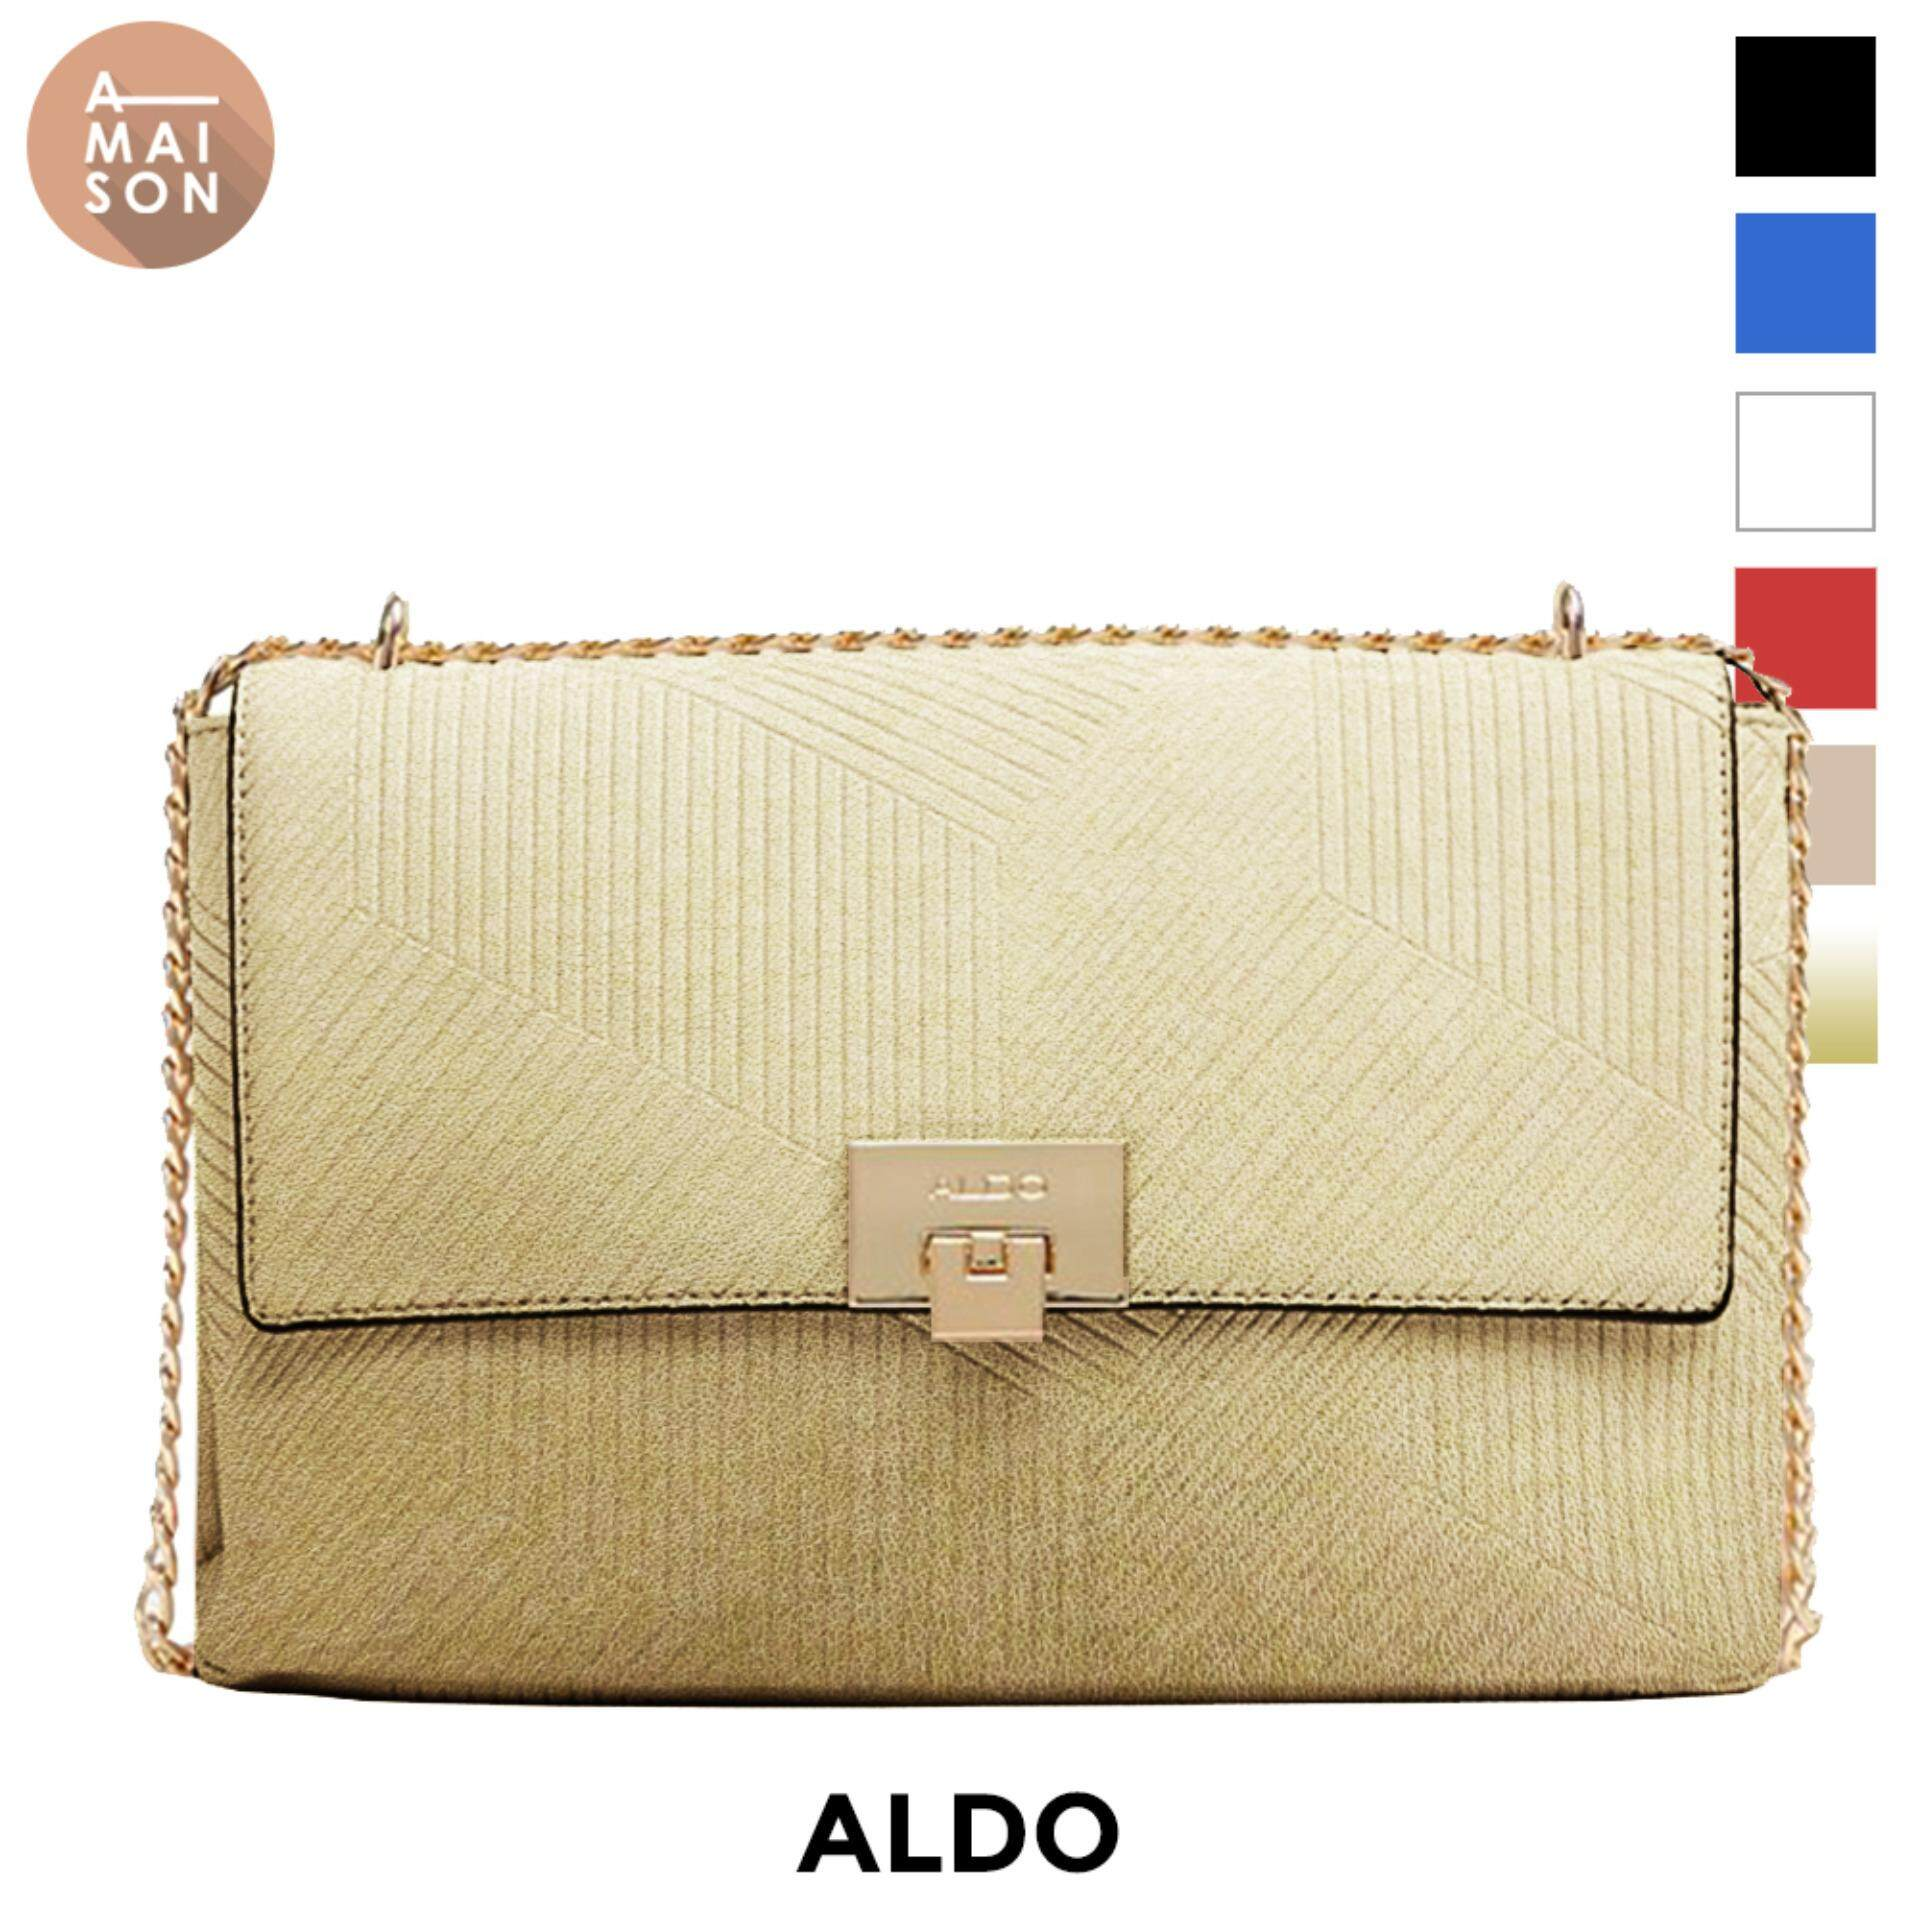 1b2daad6f77 Authentic Aldo Fair Textured Elegant Keylock Closure Evening Crossbody  Messenger Sling Shoulder Bag Handbag